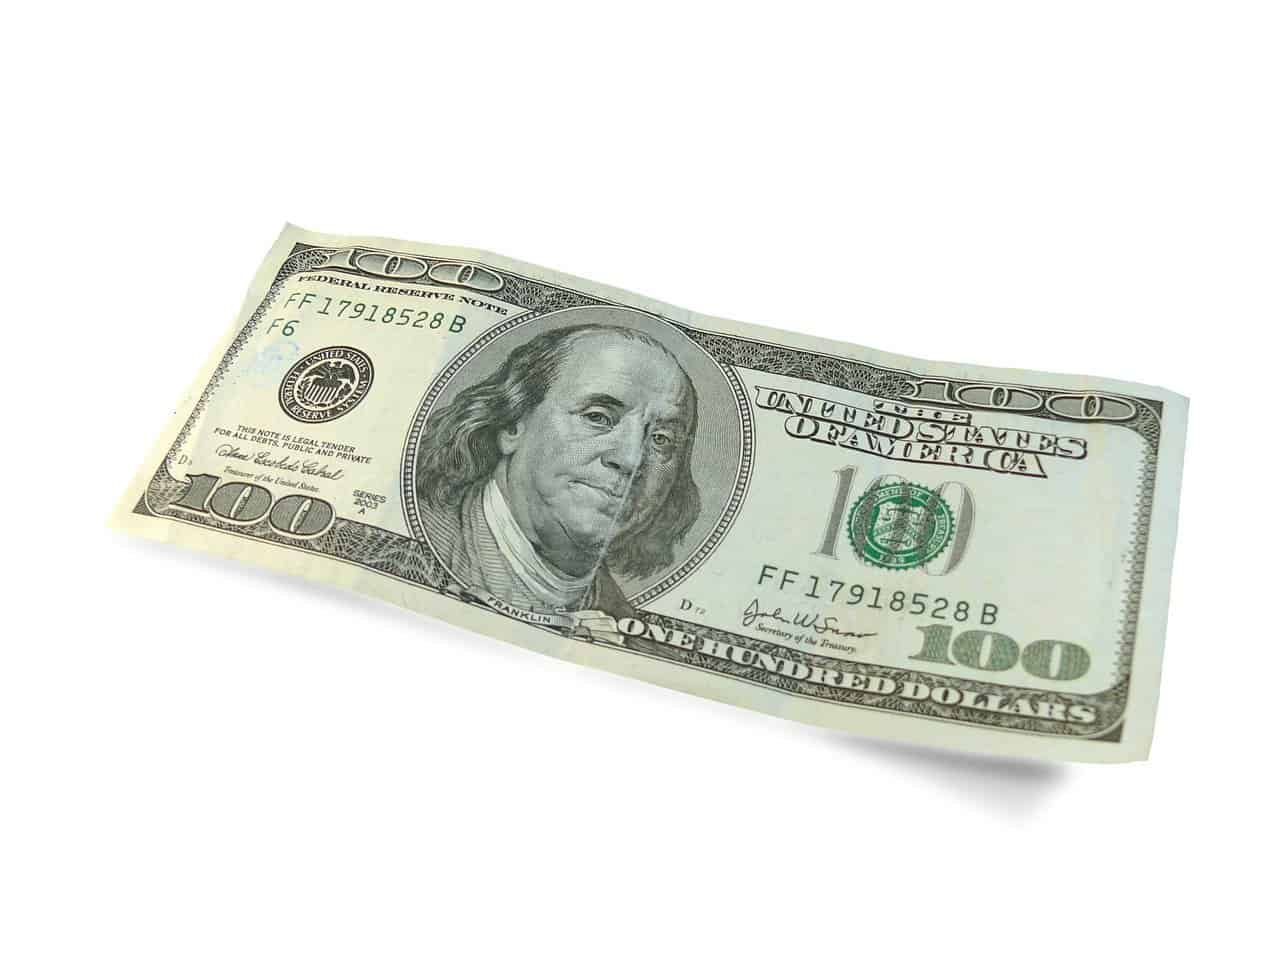 100 Dollar Payday Loan: How To Get Fast Cash In An Emergency?